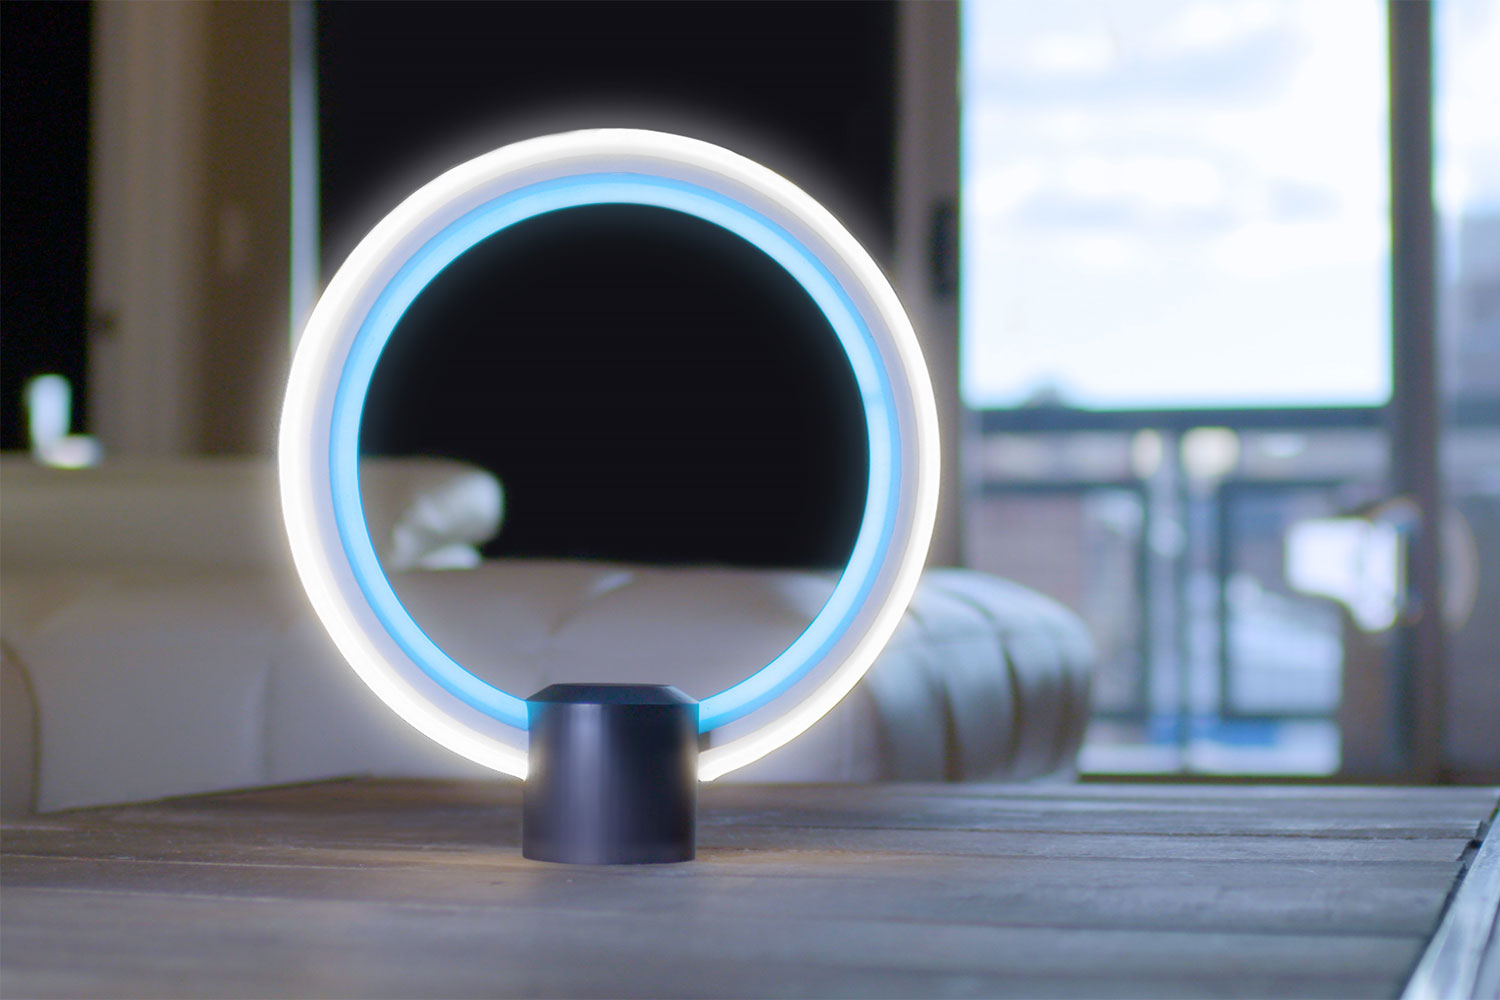 The Alexa-enabled C by GE smart lamp is now available for pre-order